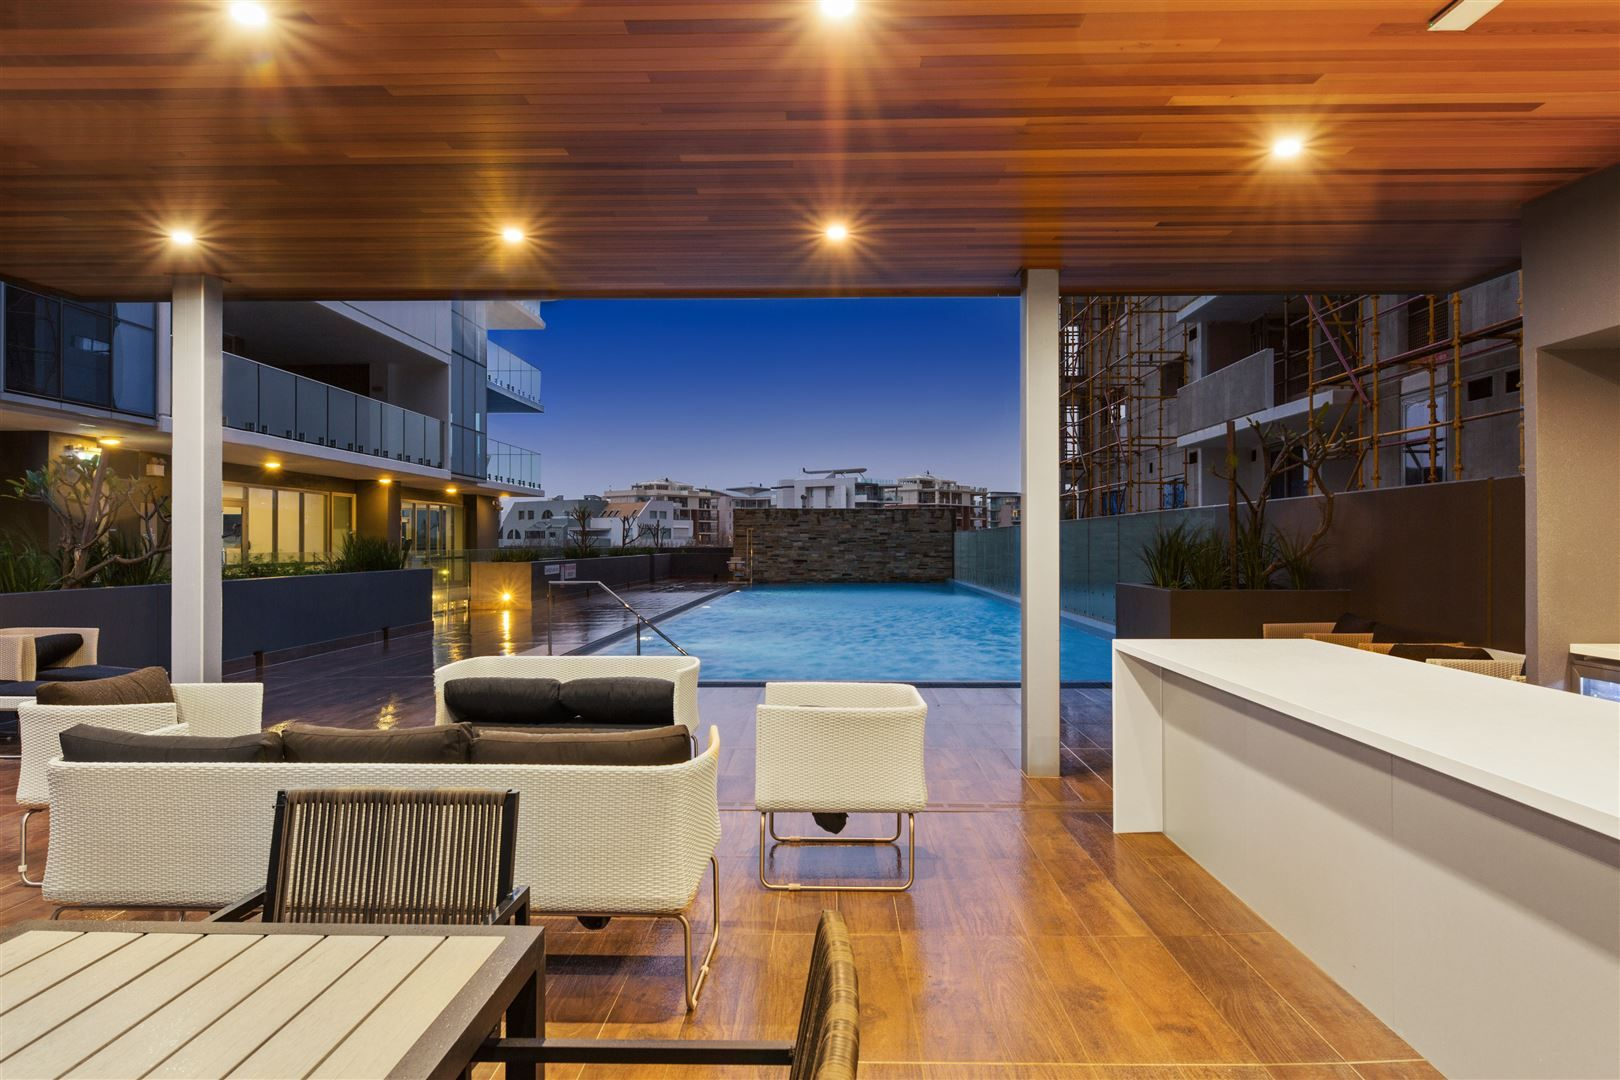 801/1 Harper Terrace, South Perth WA 6151 - Off The Plan ...